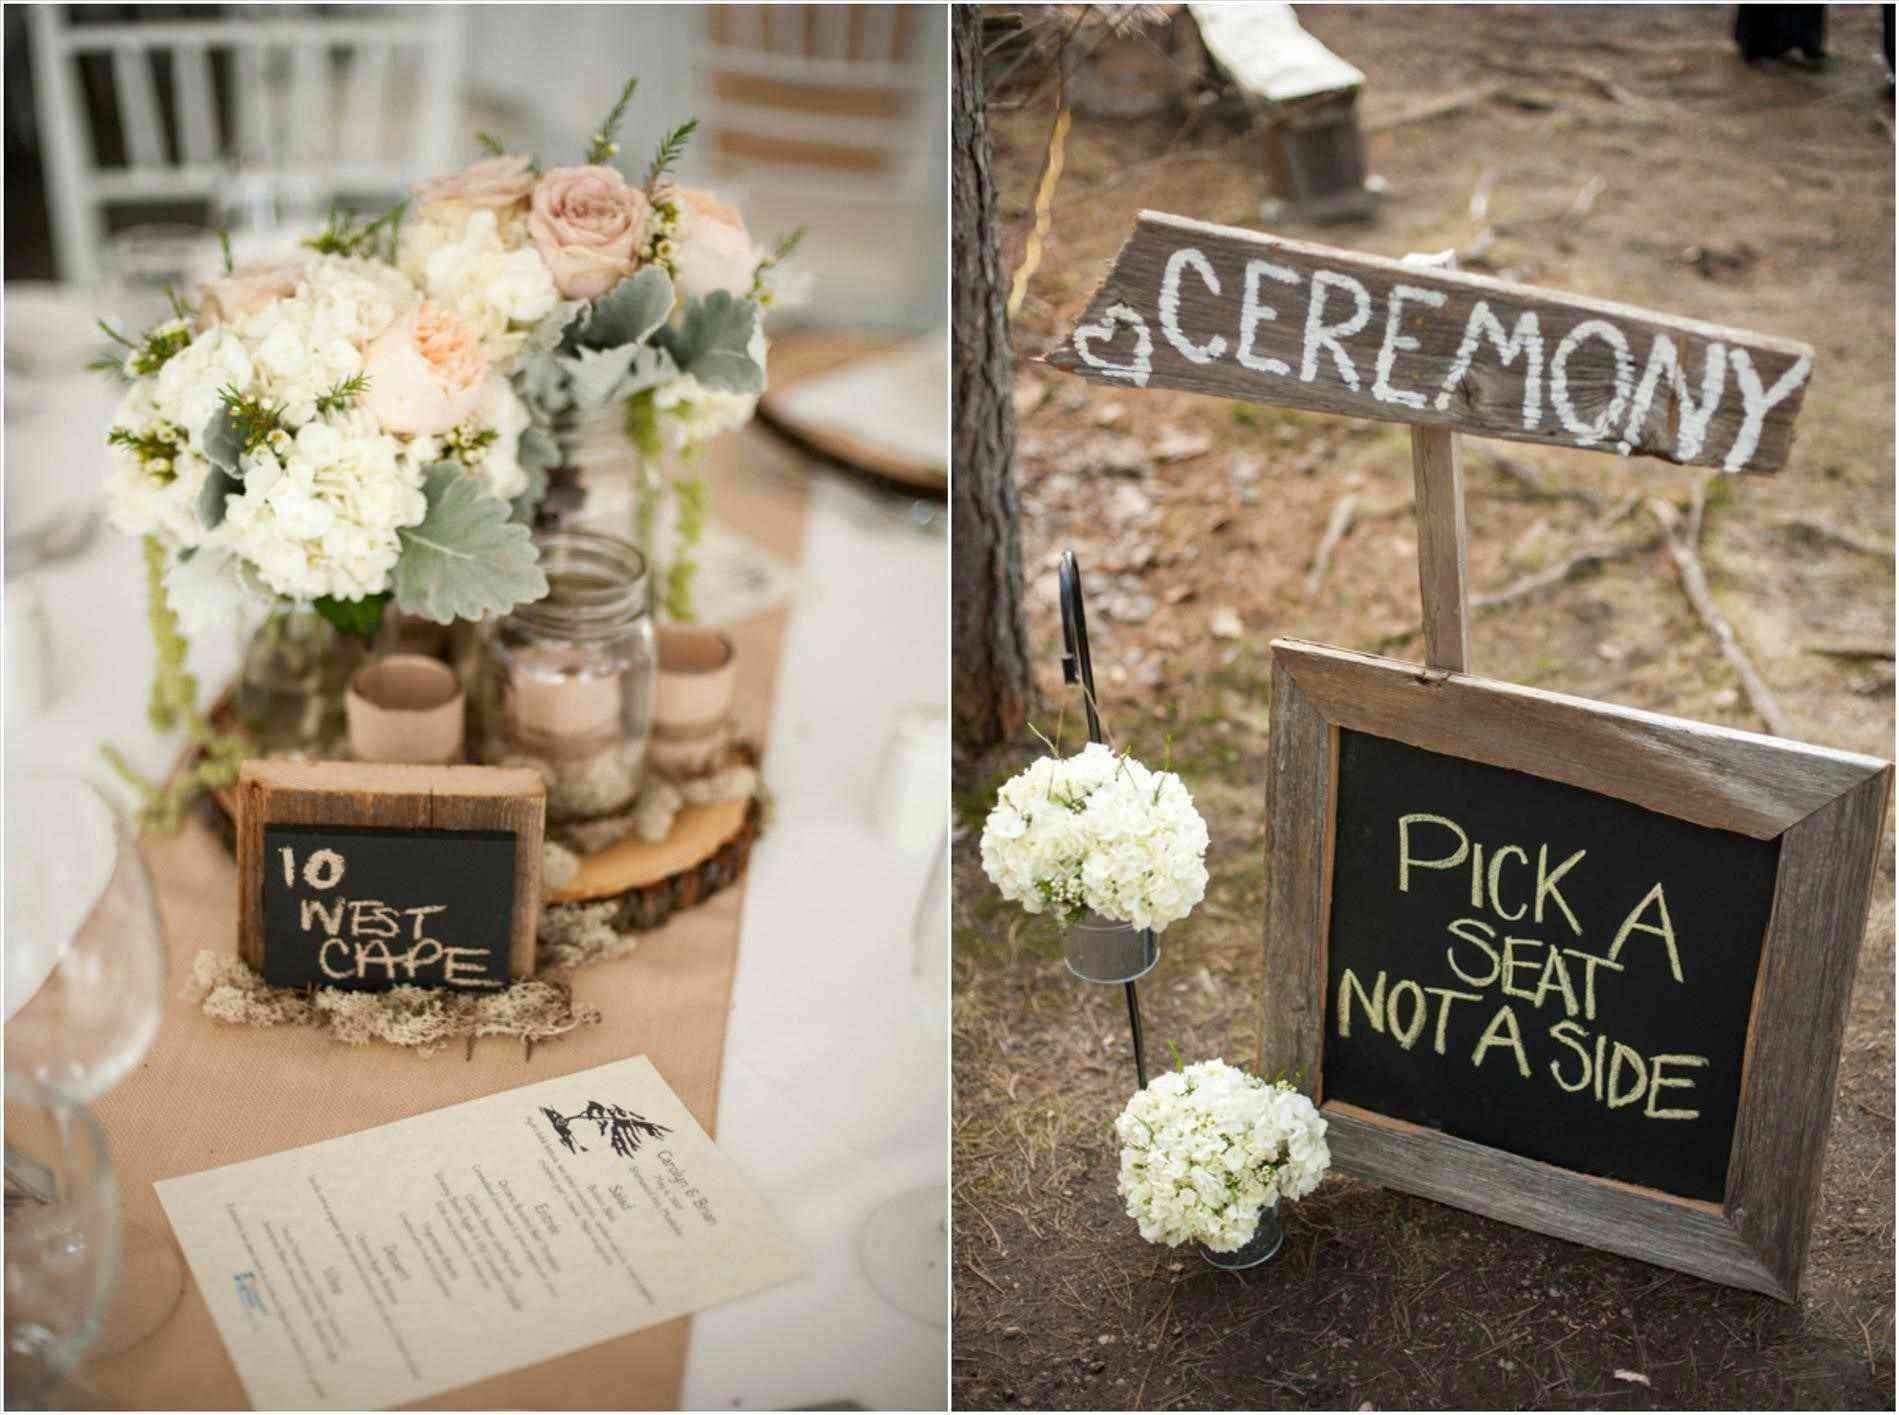 10 Lovely Country Wedding Ideas For Summer summer wedding ideas fresh wedding themes ideas pinterest rustic